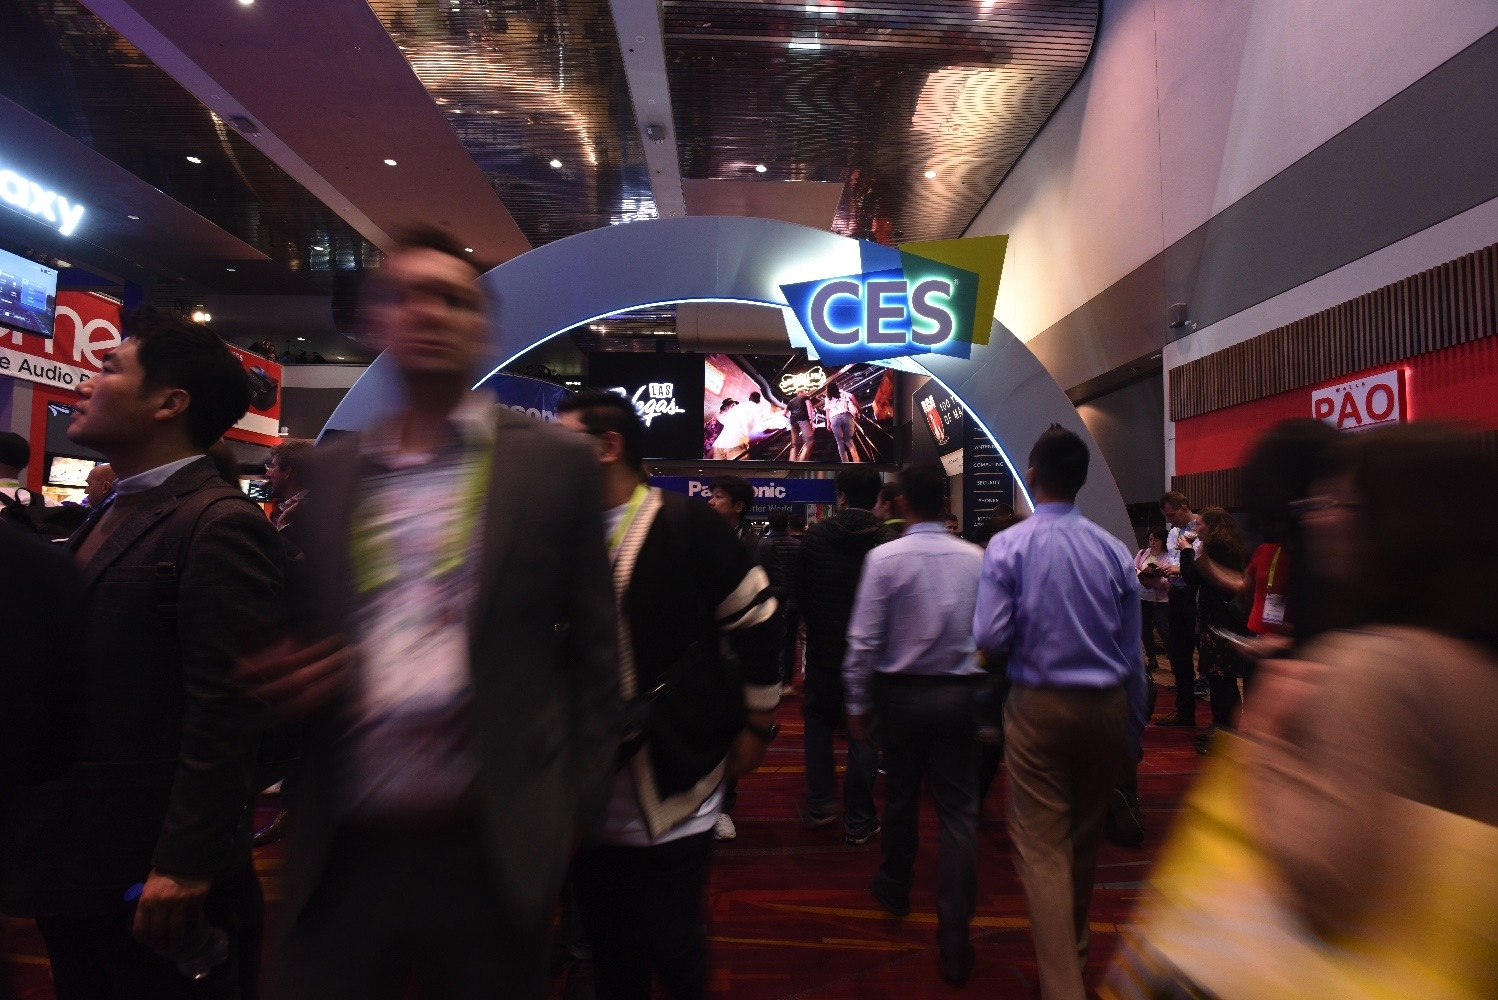 CES 2019: In pictures | DeviceDaily.com